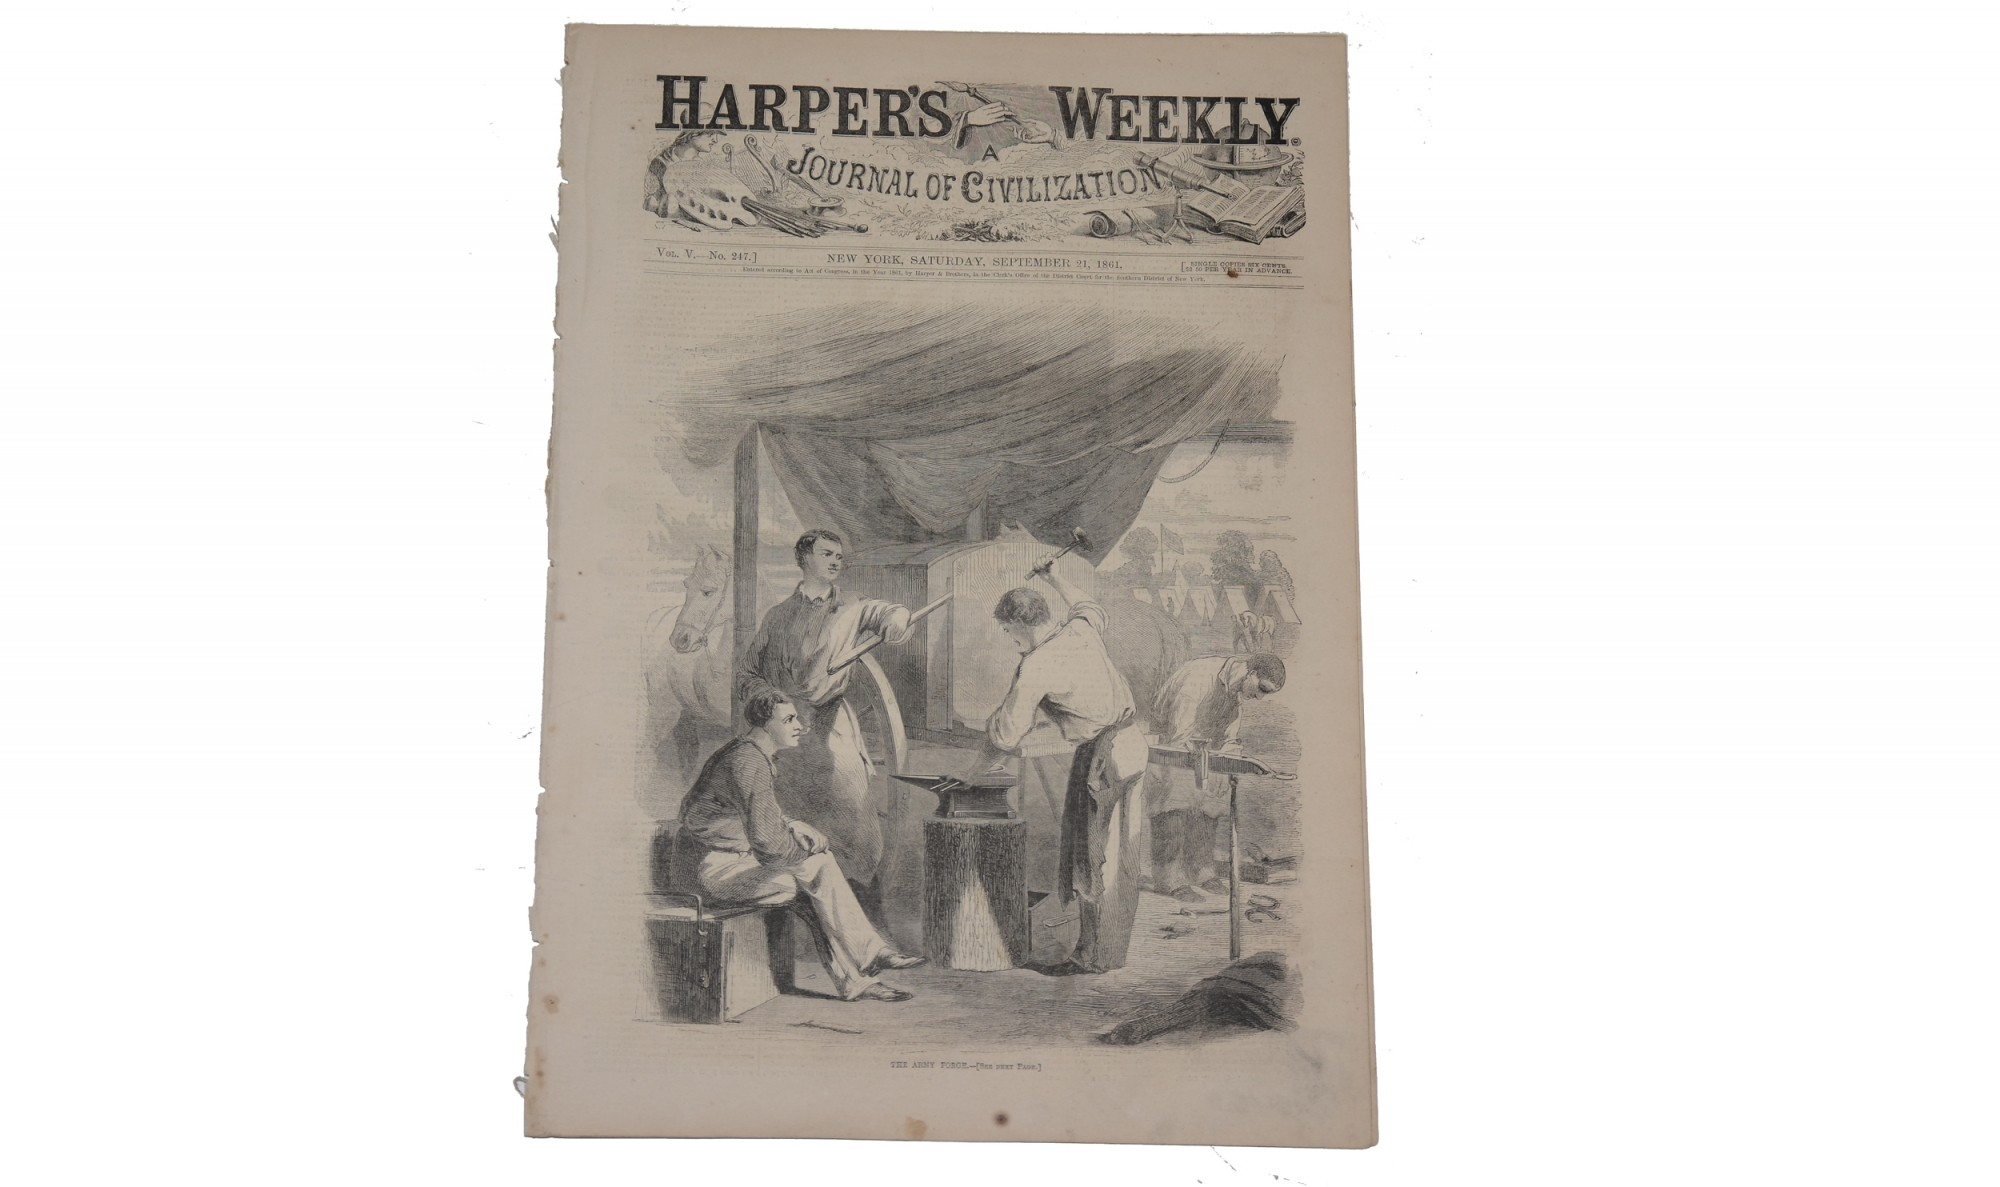 HARPER'S WEEKLY, NEW YORK, SEPTEMBER 21, 1861 – GEN. MCCLELLAN